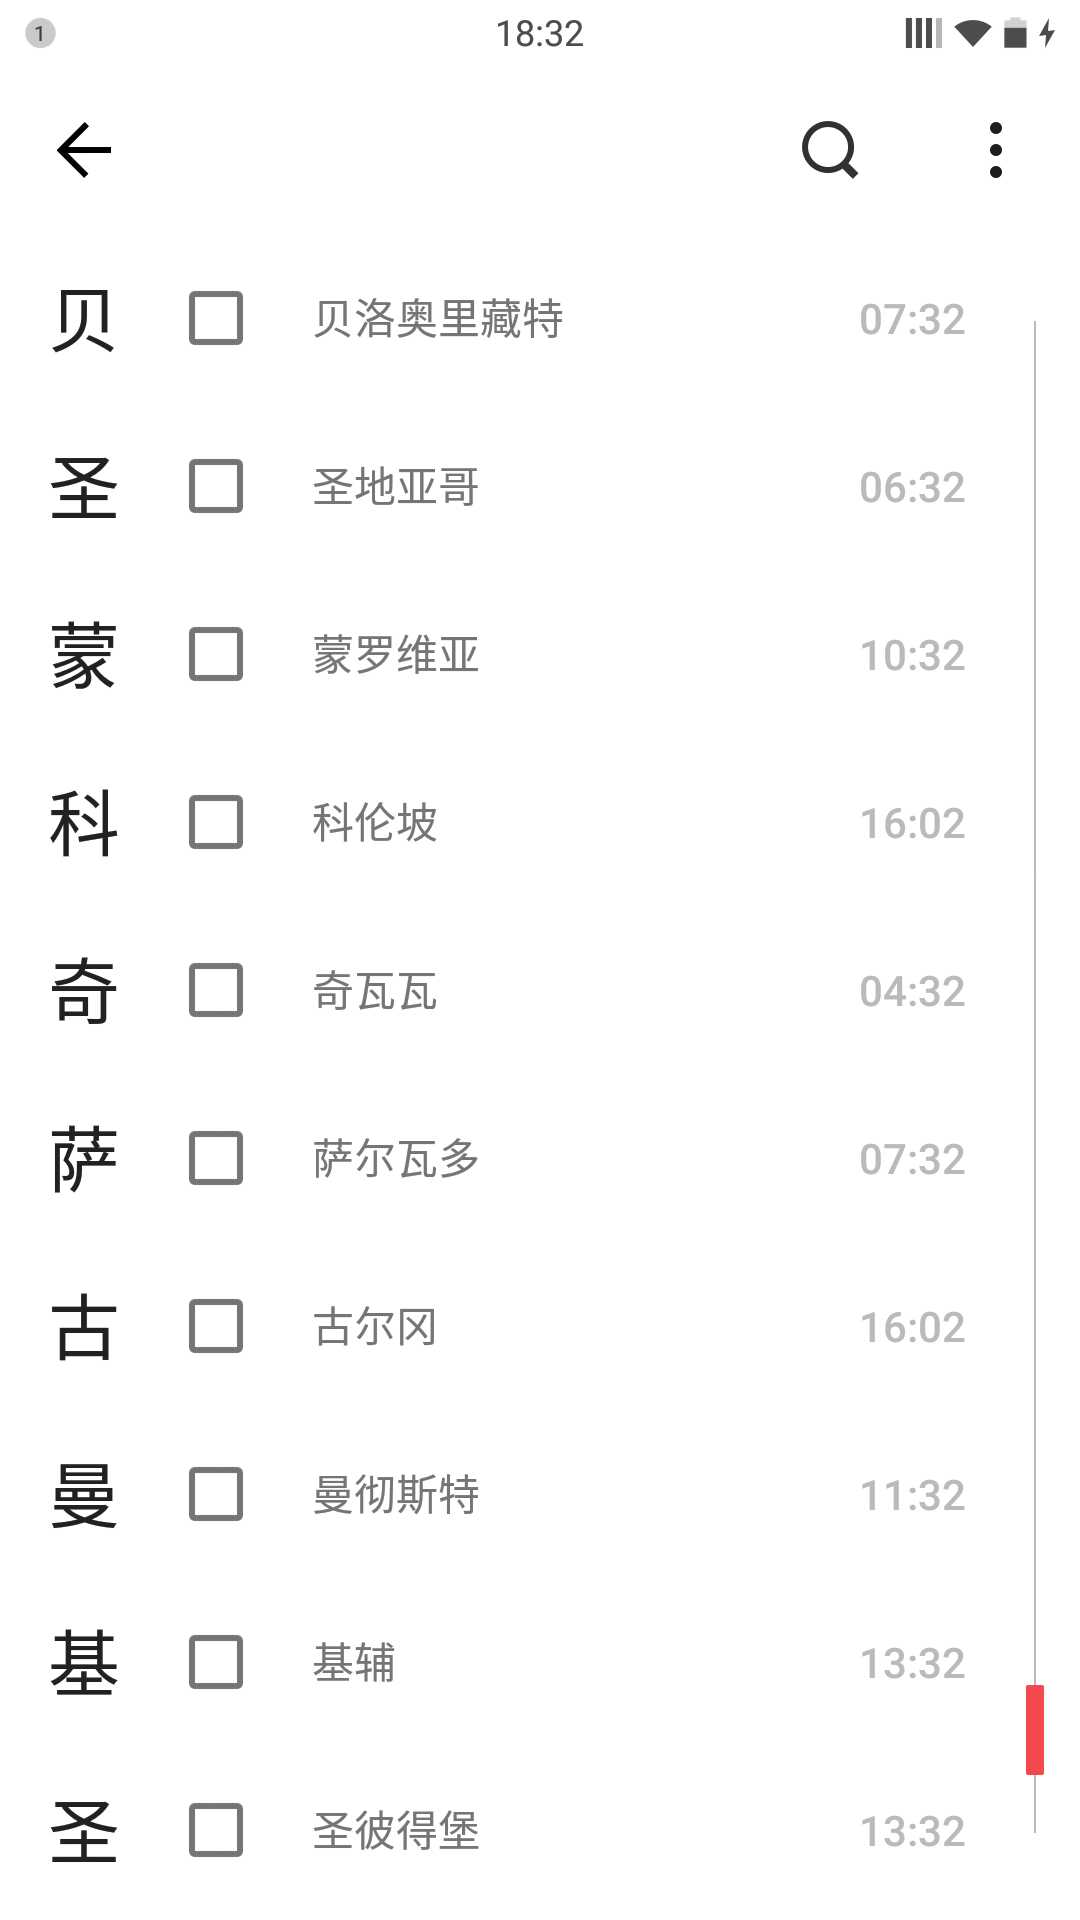 Screenshot_2015-06-05-18-32-45.png